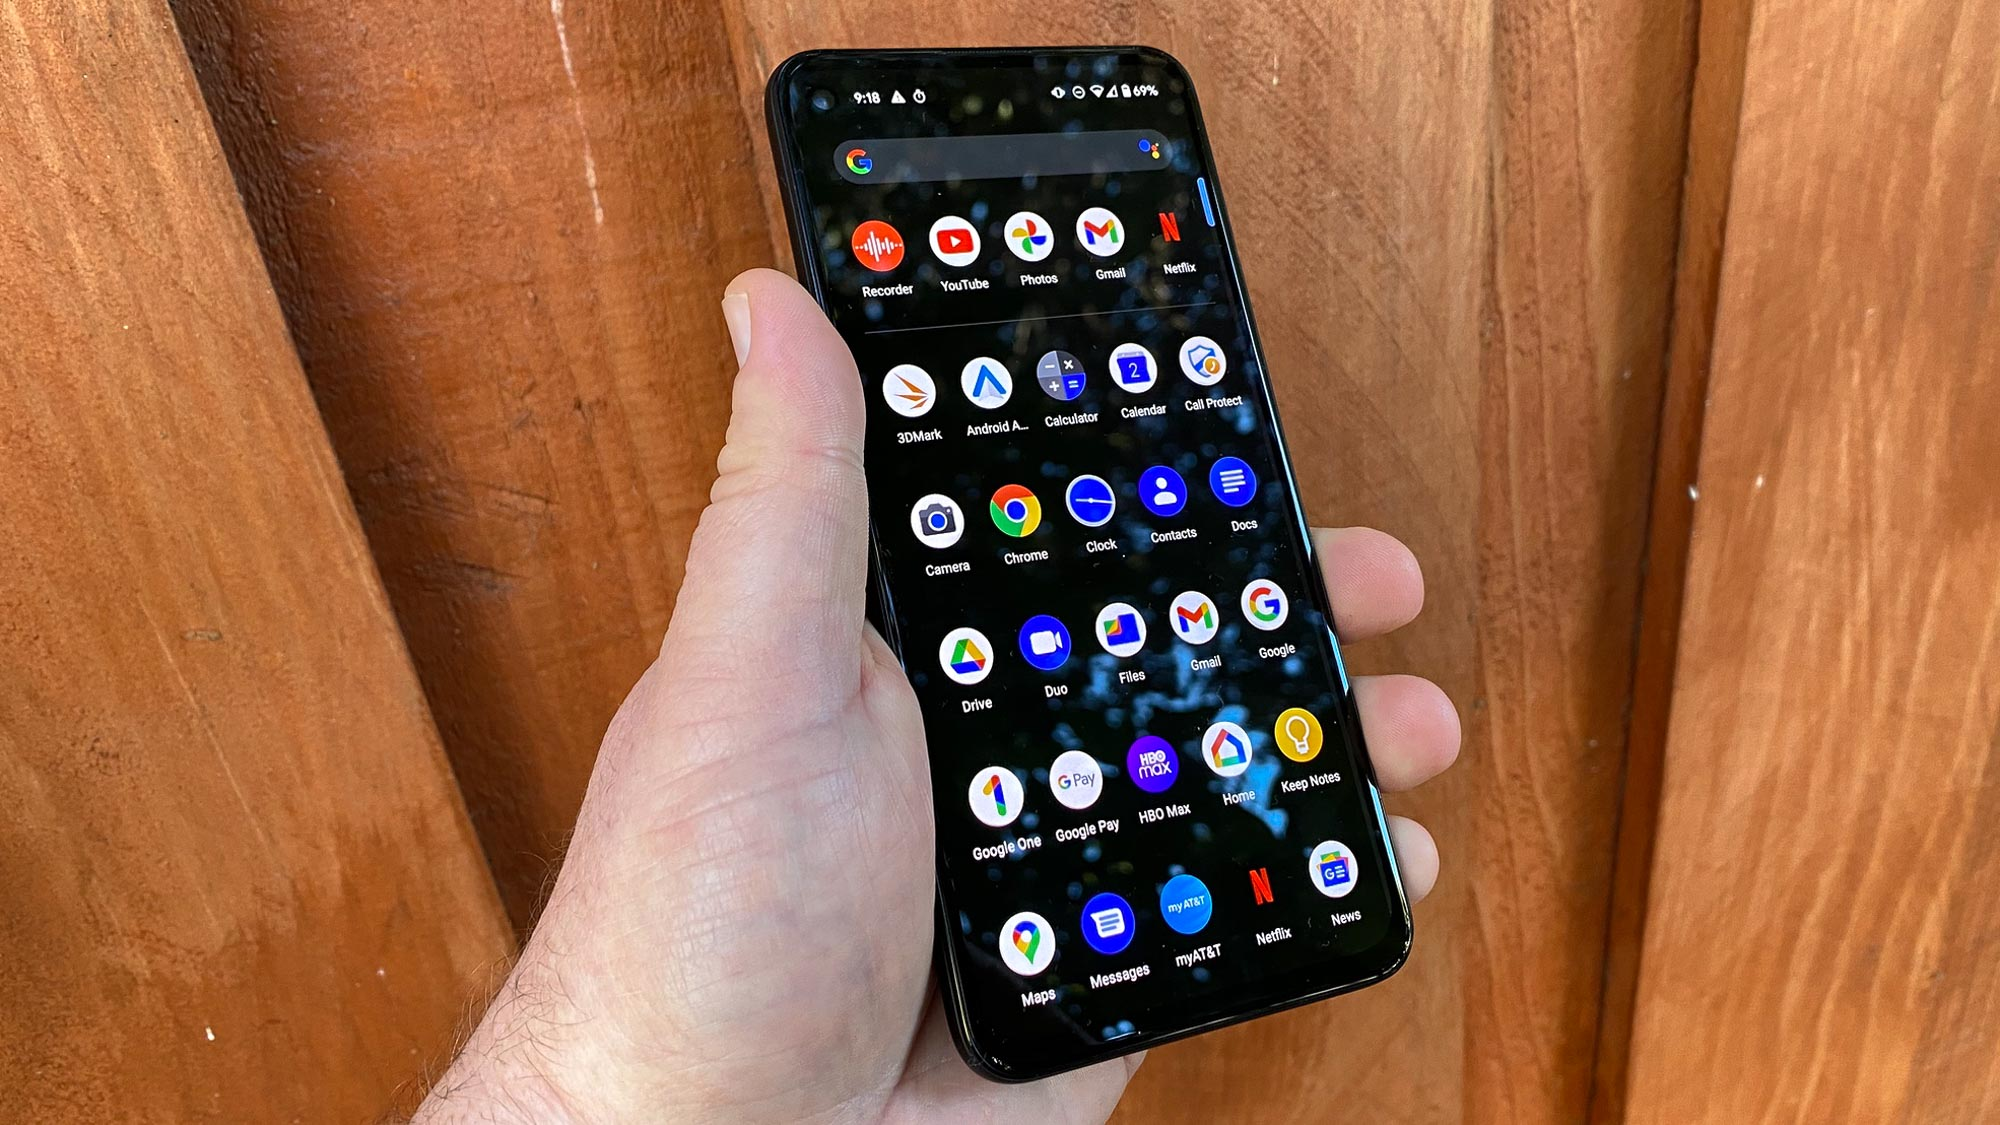 Best Android phones: Pixel 4a 5G